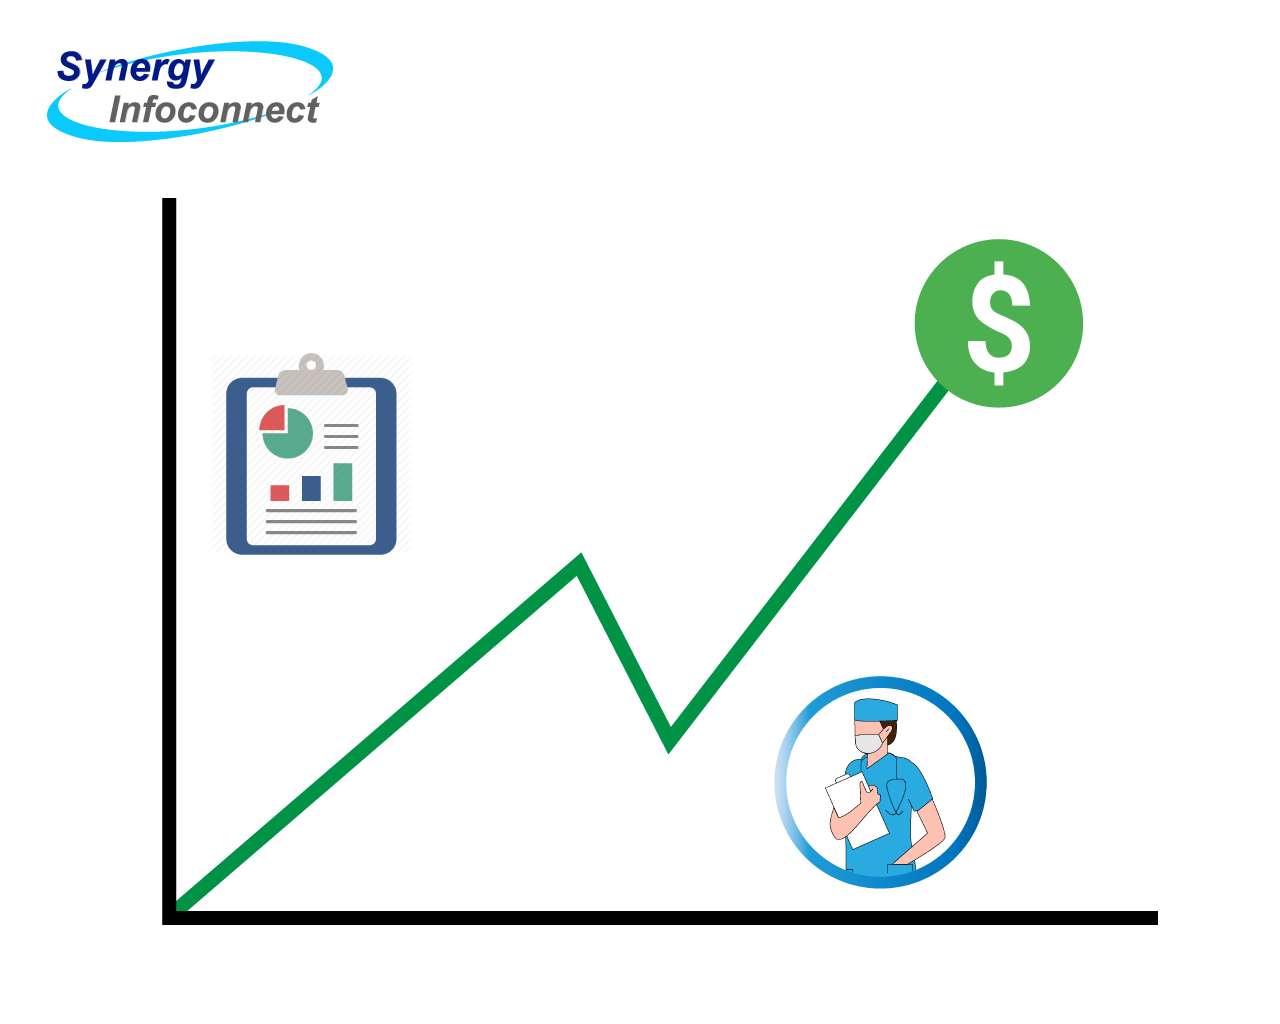 Better care coordination leads to more revenue